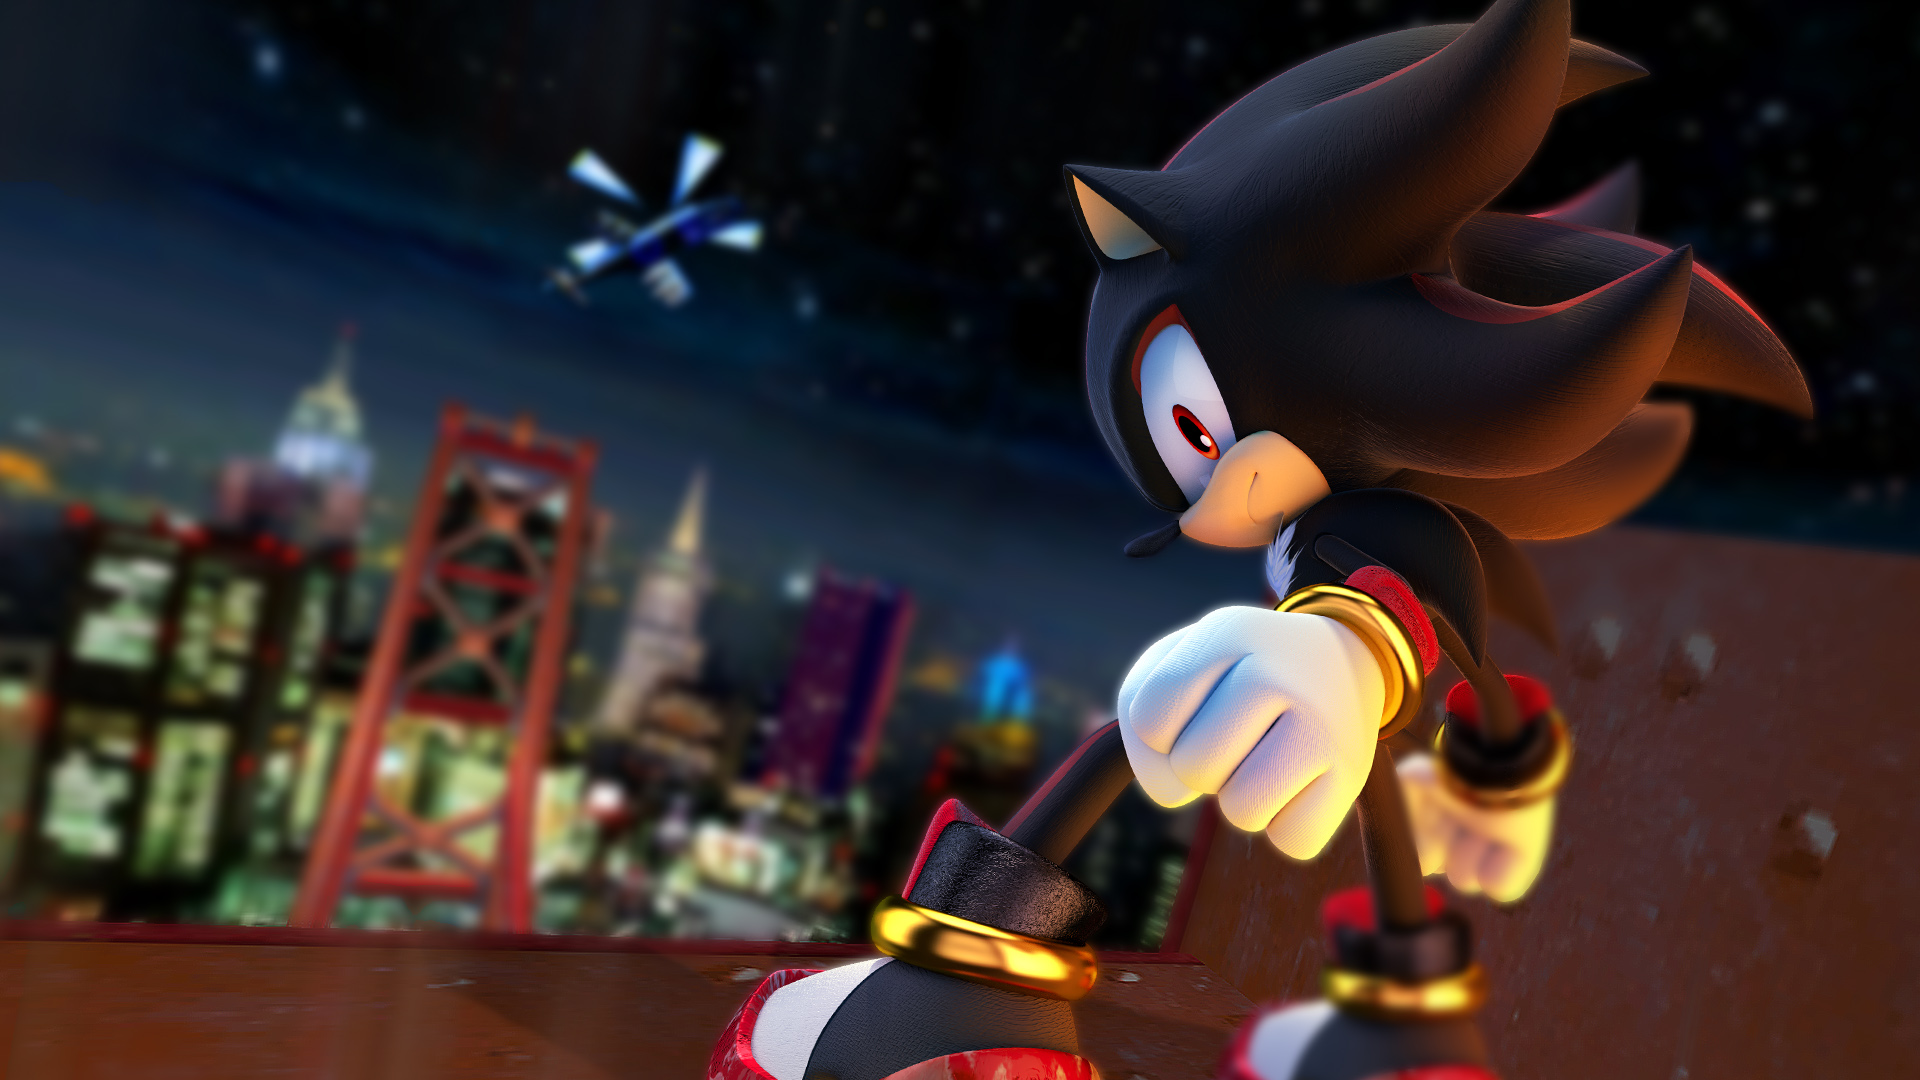 What You Didn't Know About Shadow the Hedgehog - Ditch the Label